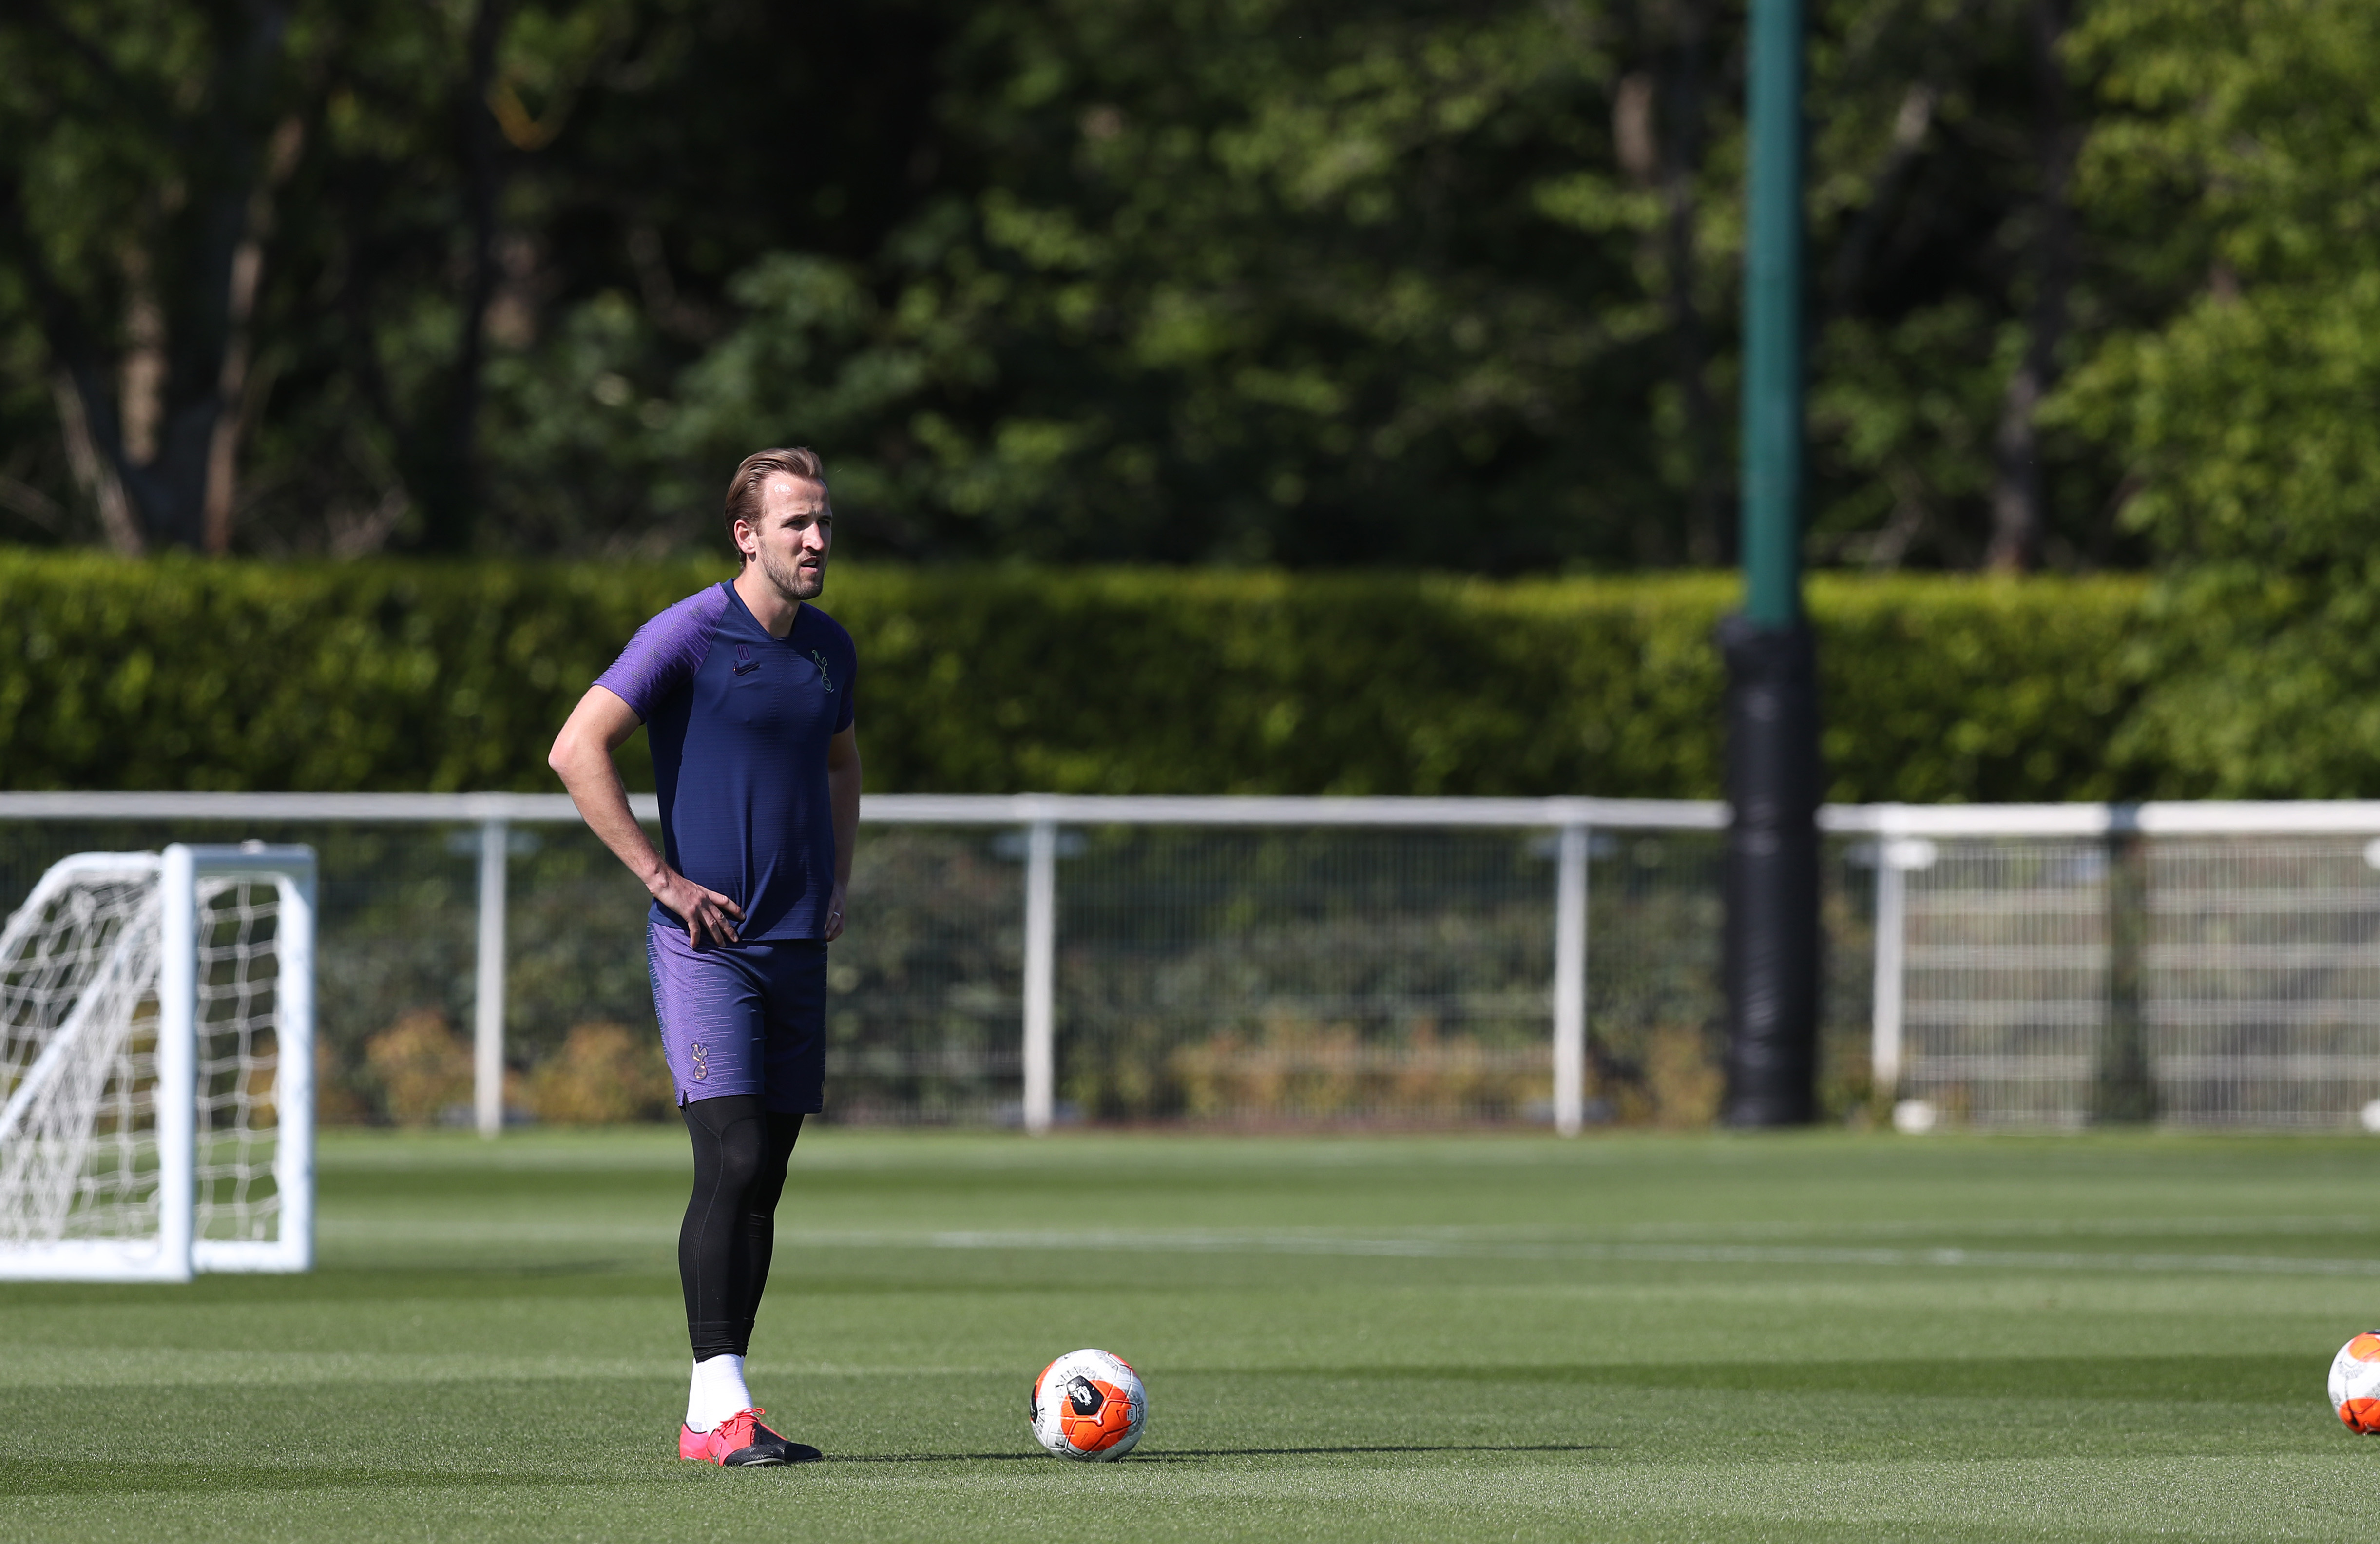 Tottenham Hotspur Return to Training Following the Relaxing of Covid-19 Restrictions